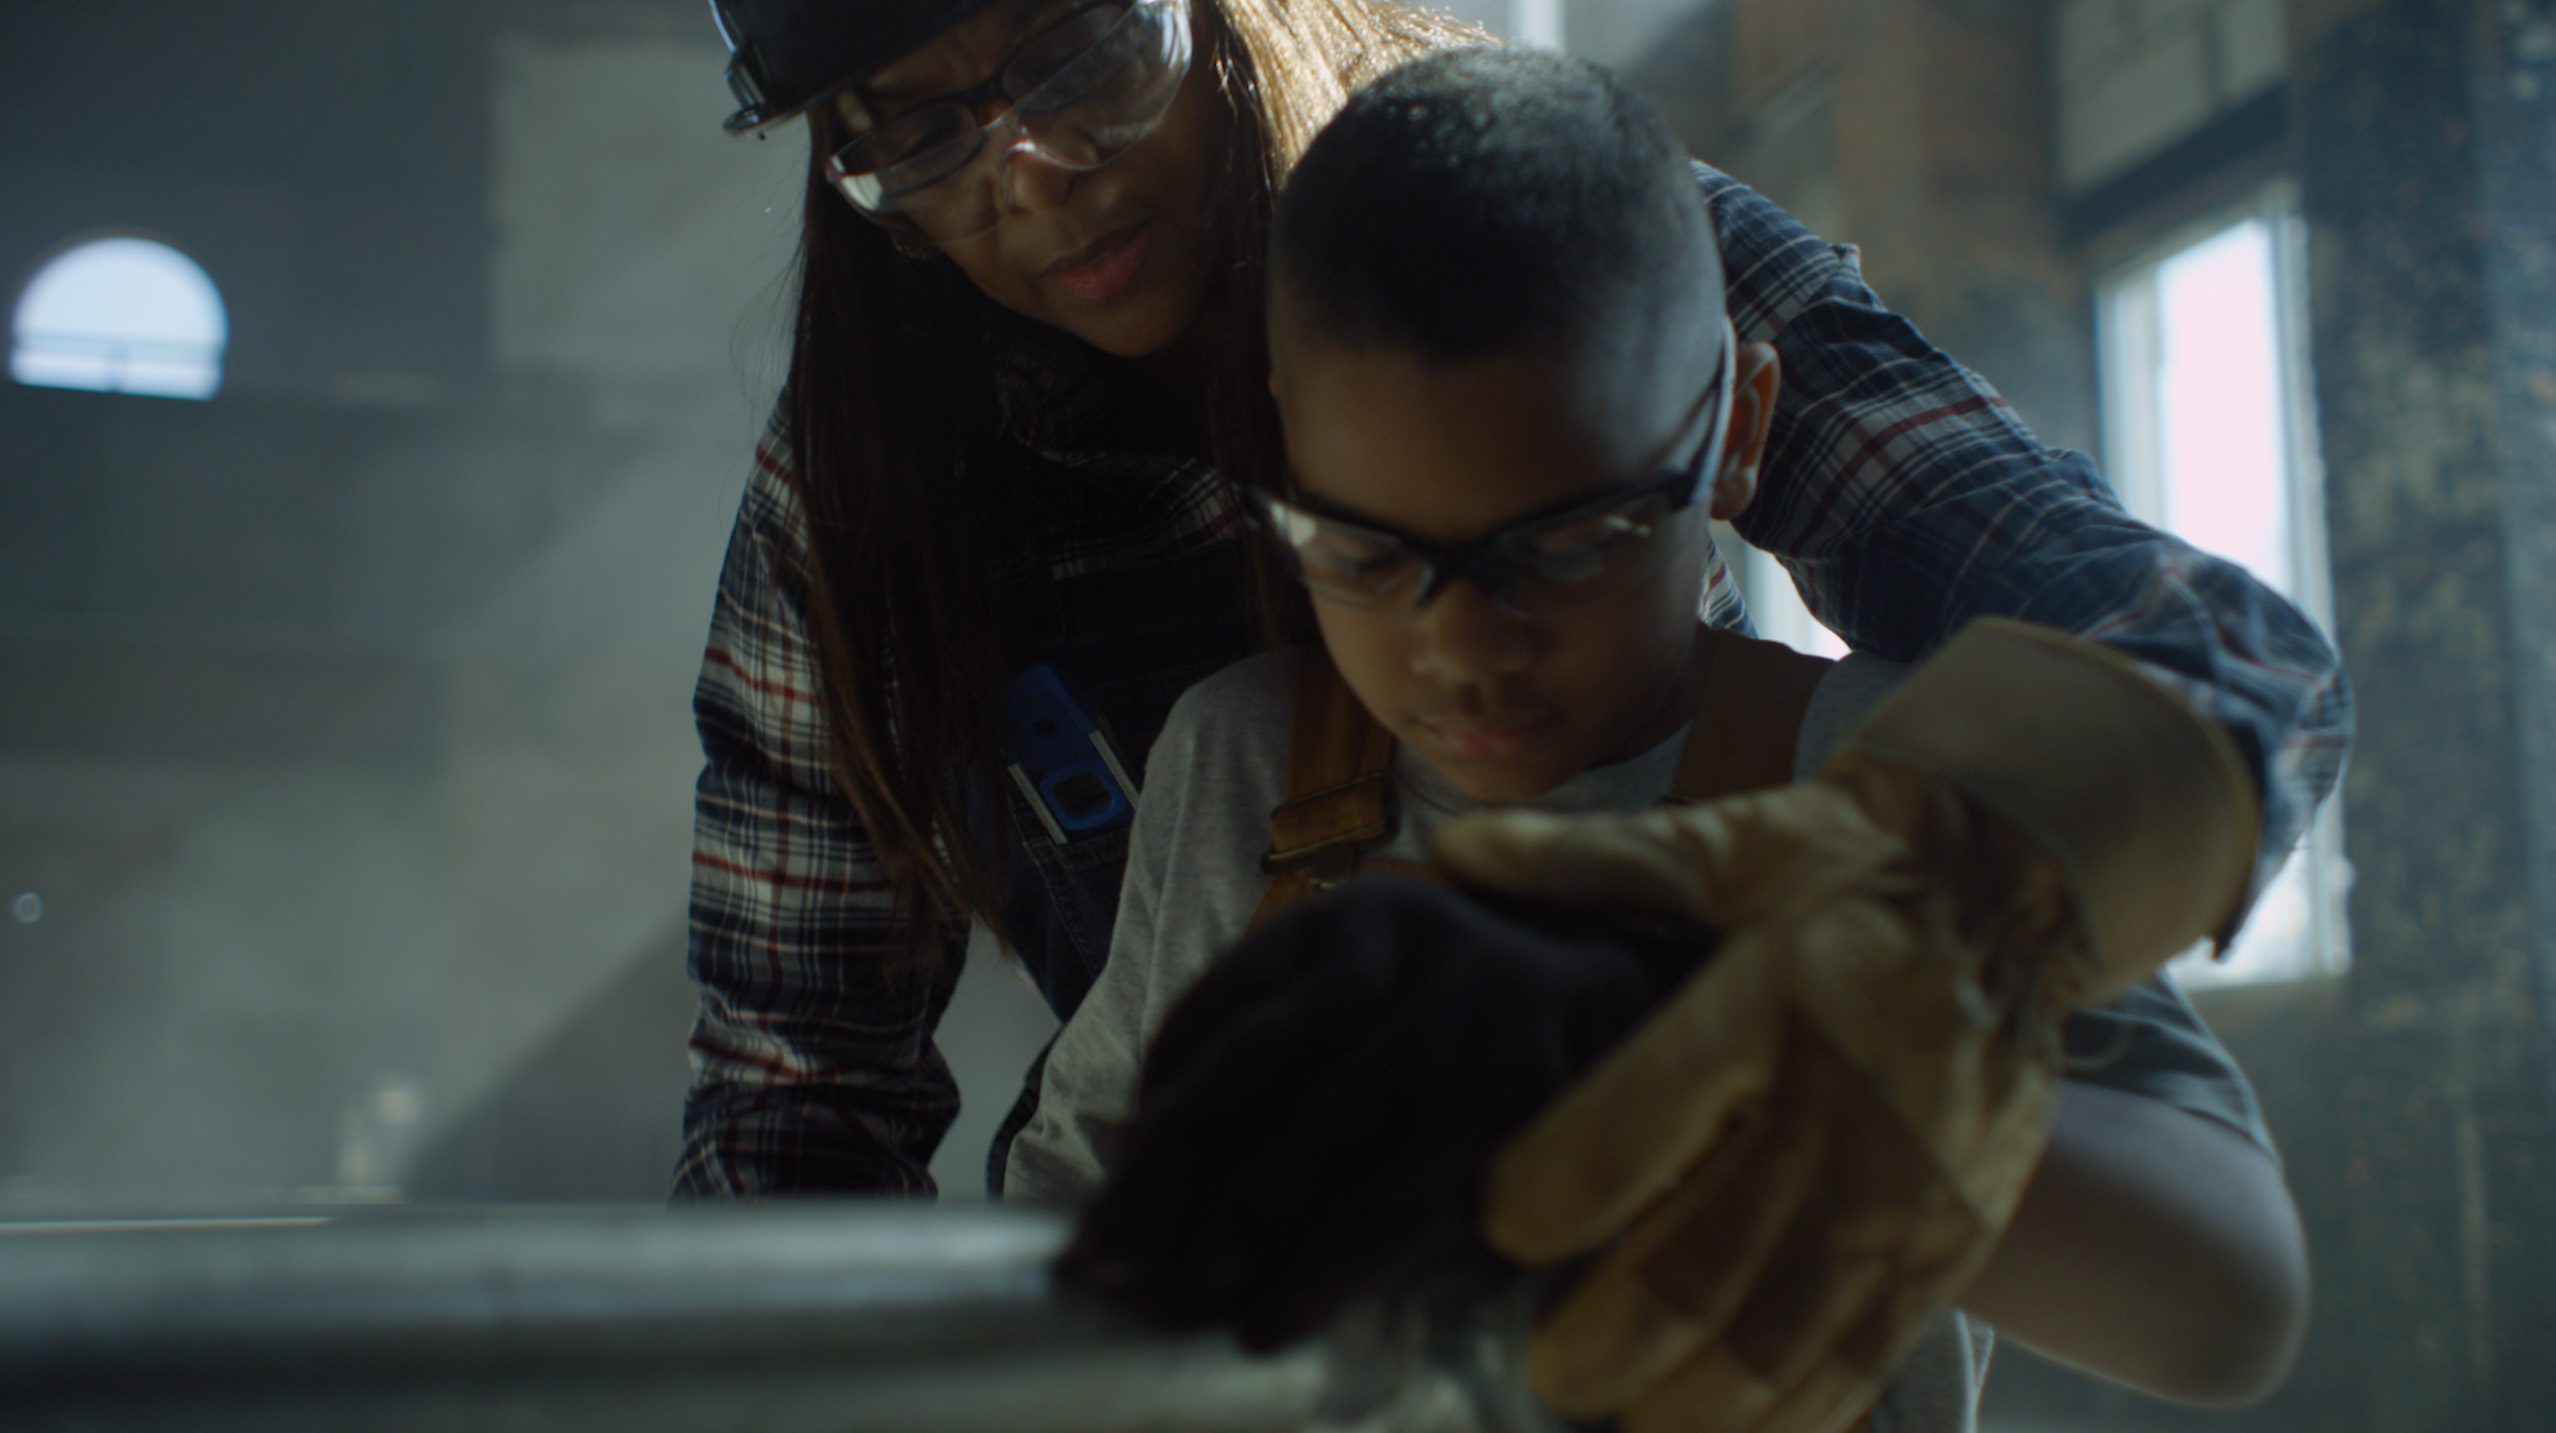 Carhartt_s fall campaign celebrates hardworking people who live a Carhartt Way of Life. 2